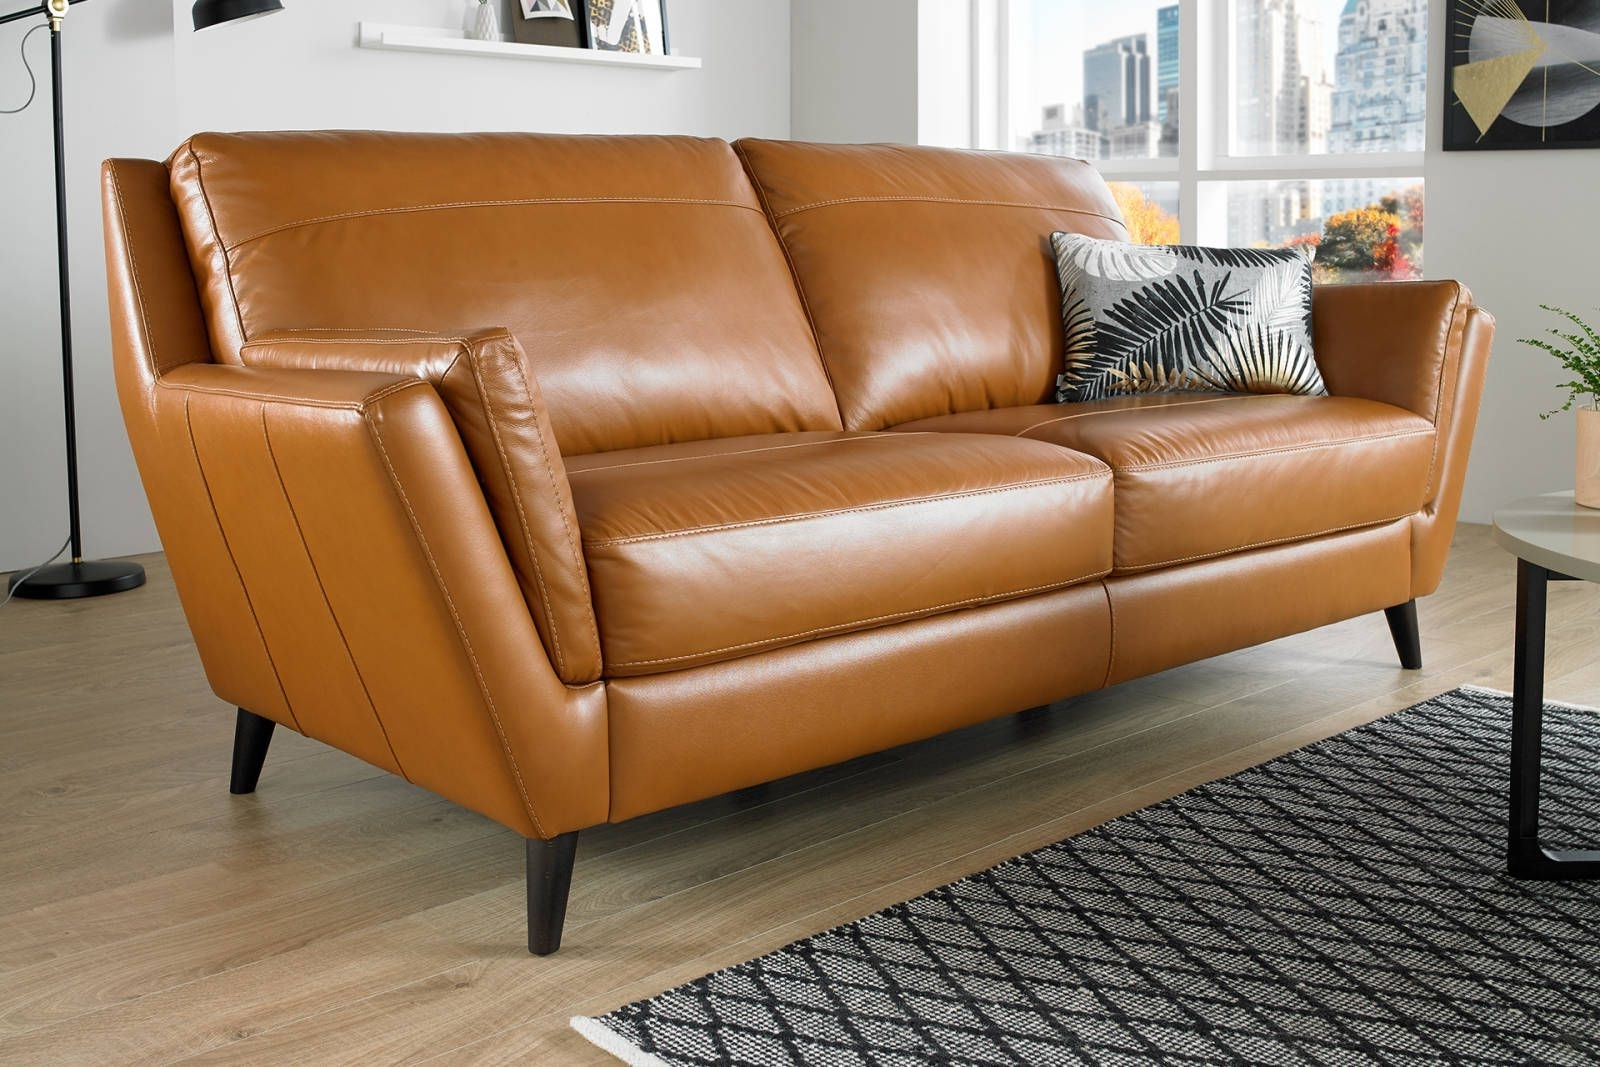 Well Known Homemakers Sectional Sofas Pertaining To Image Result For Leather Orange Brown Sofa (View 19 of 20)